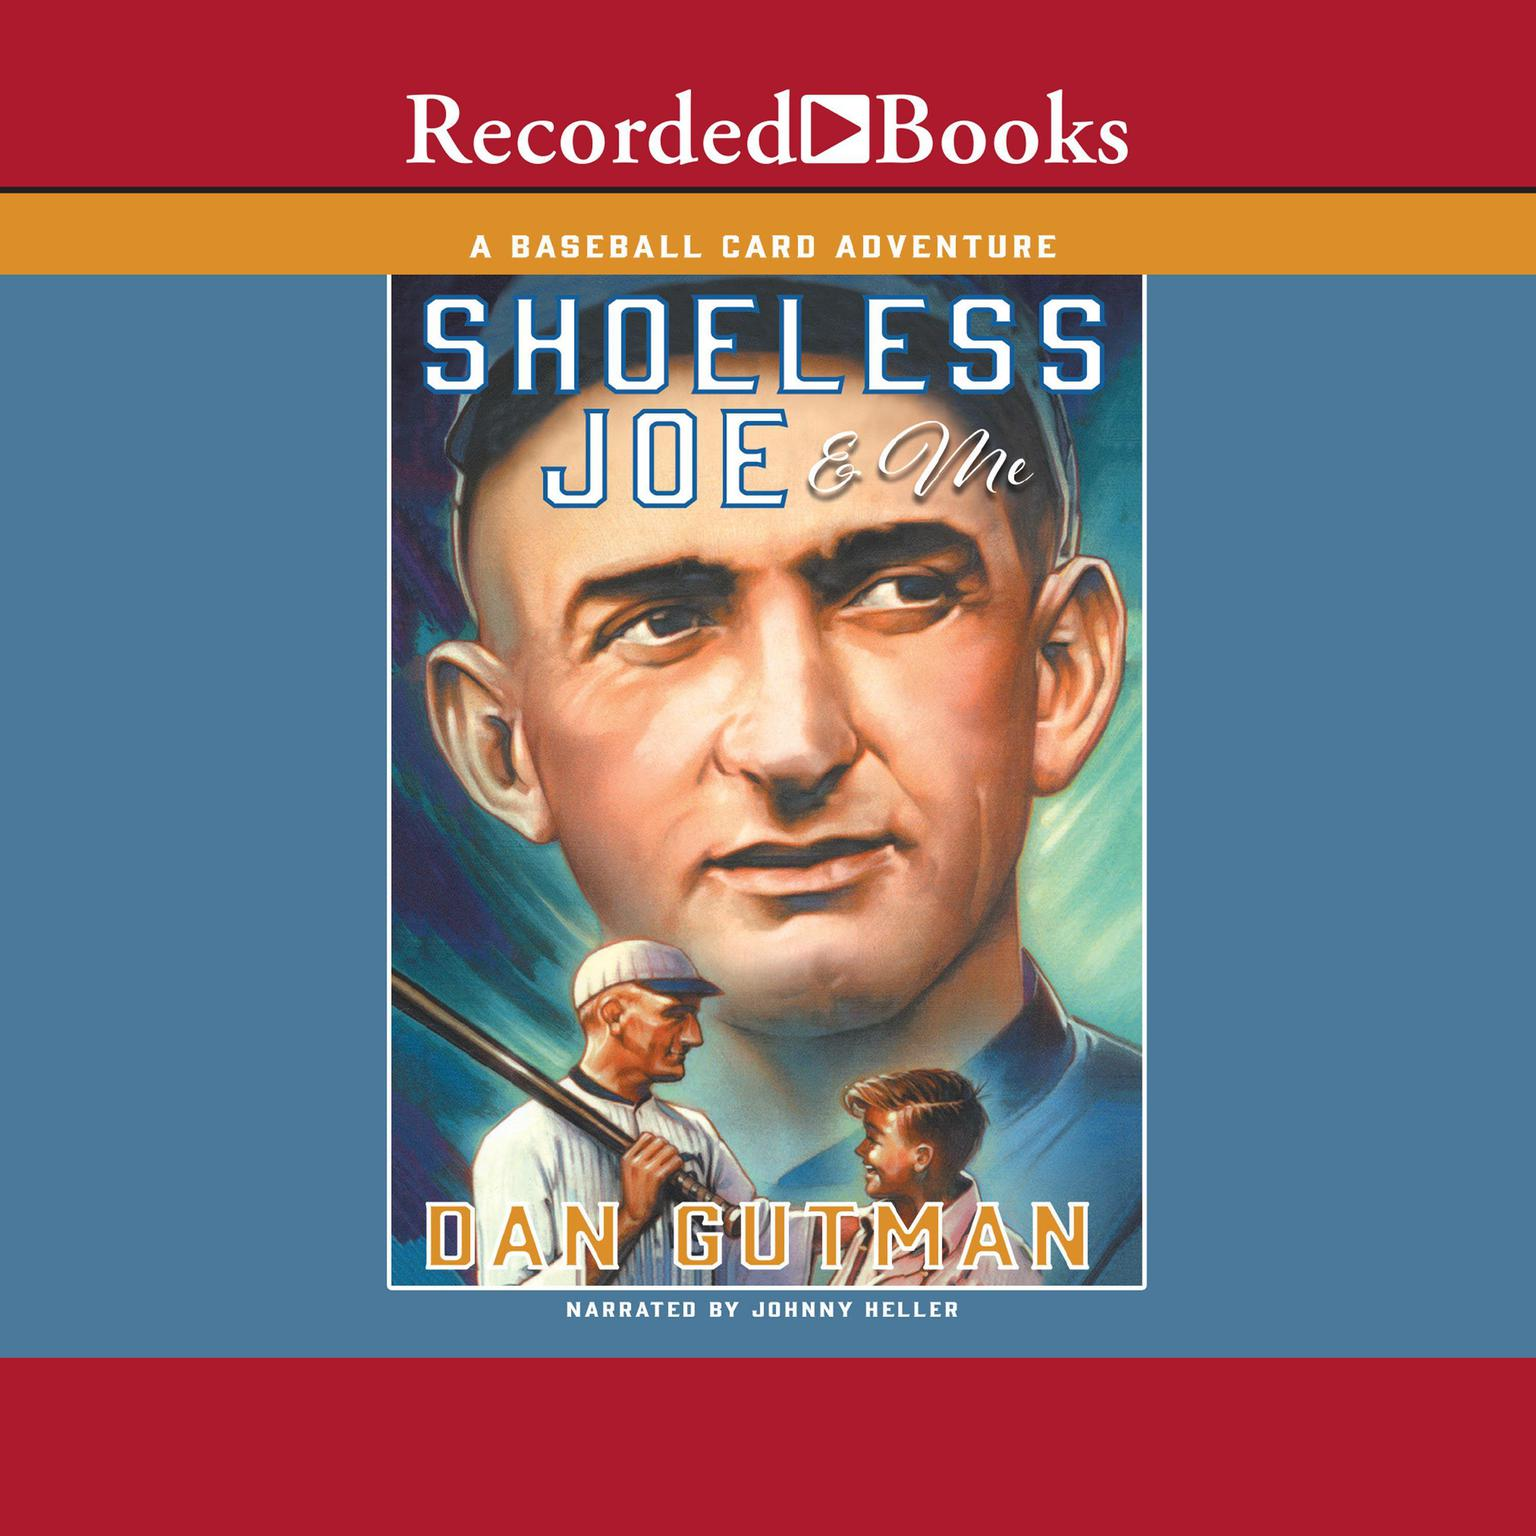 Warriors A Vision Of Shadows Free Download: Shoeless Joe & Me - Audiobook